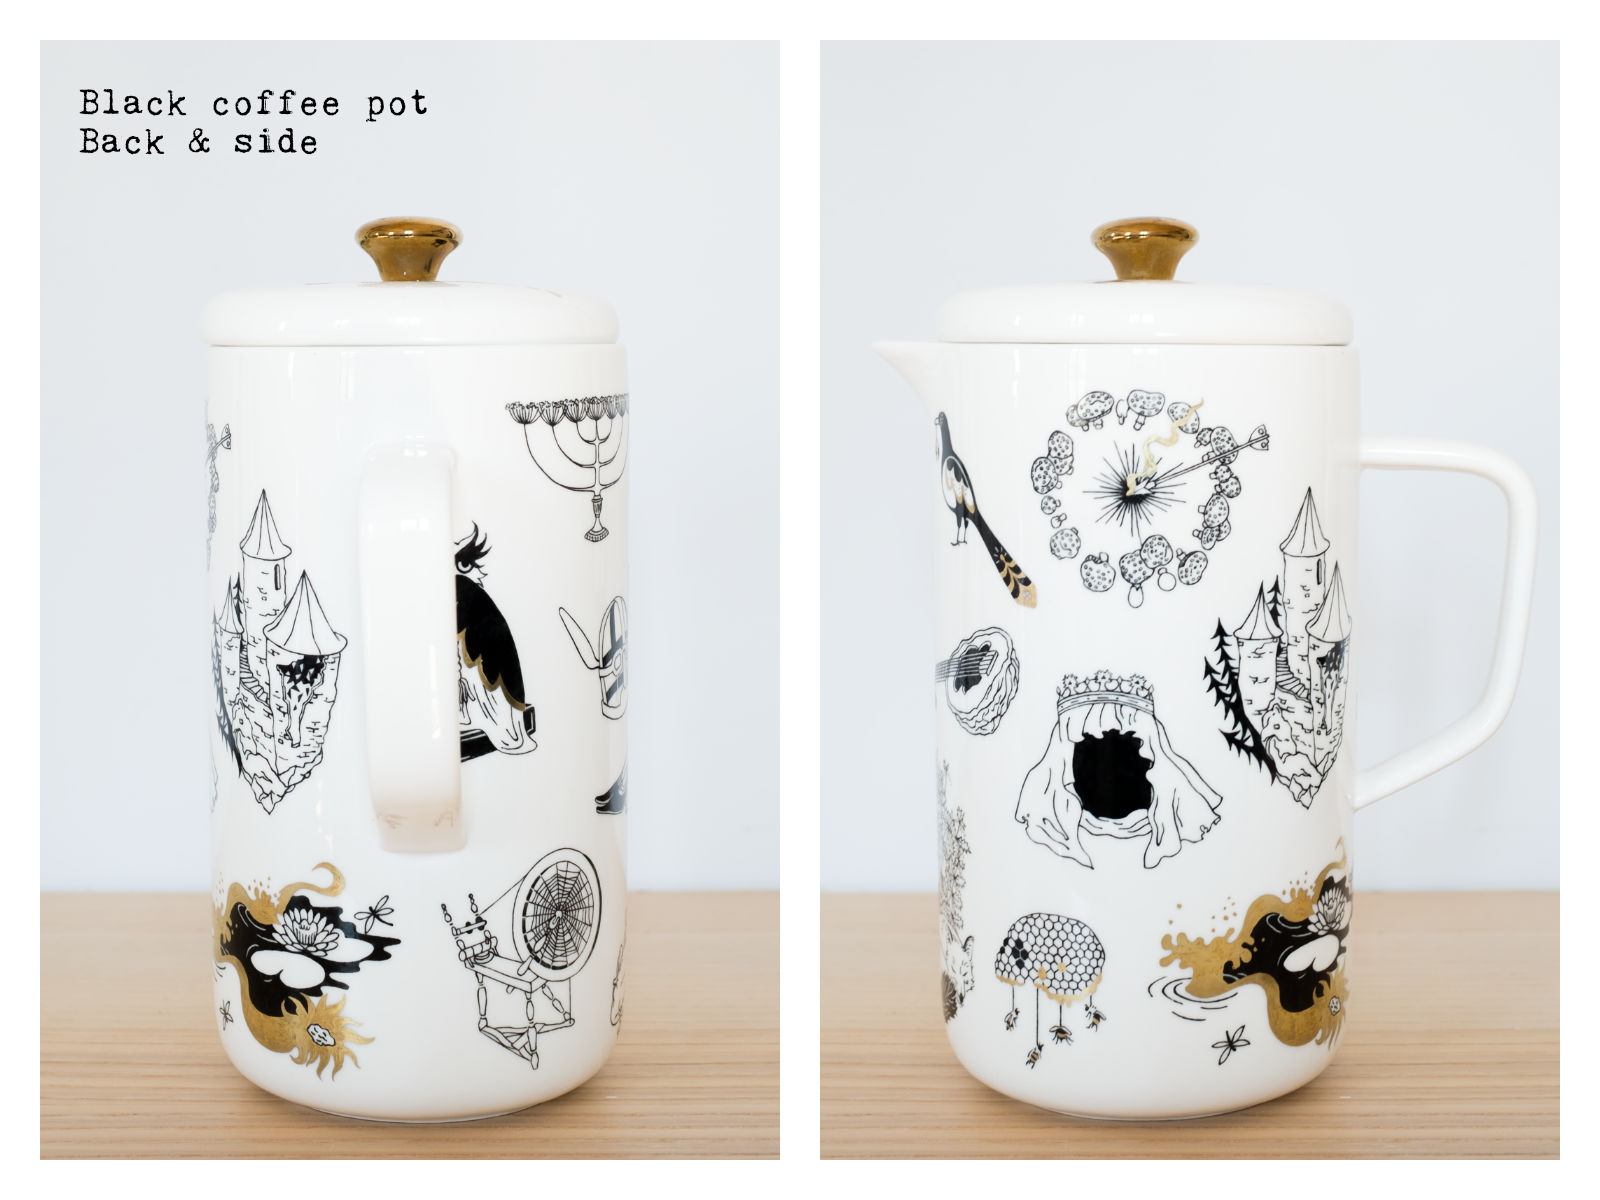 "Back & side of a black coffee pot from ""Enchanteresse"", a collection of painted porcelains by messalyn."